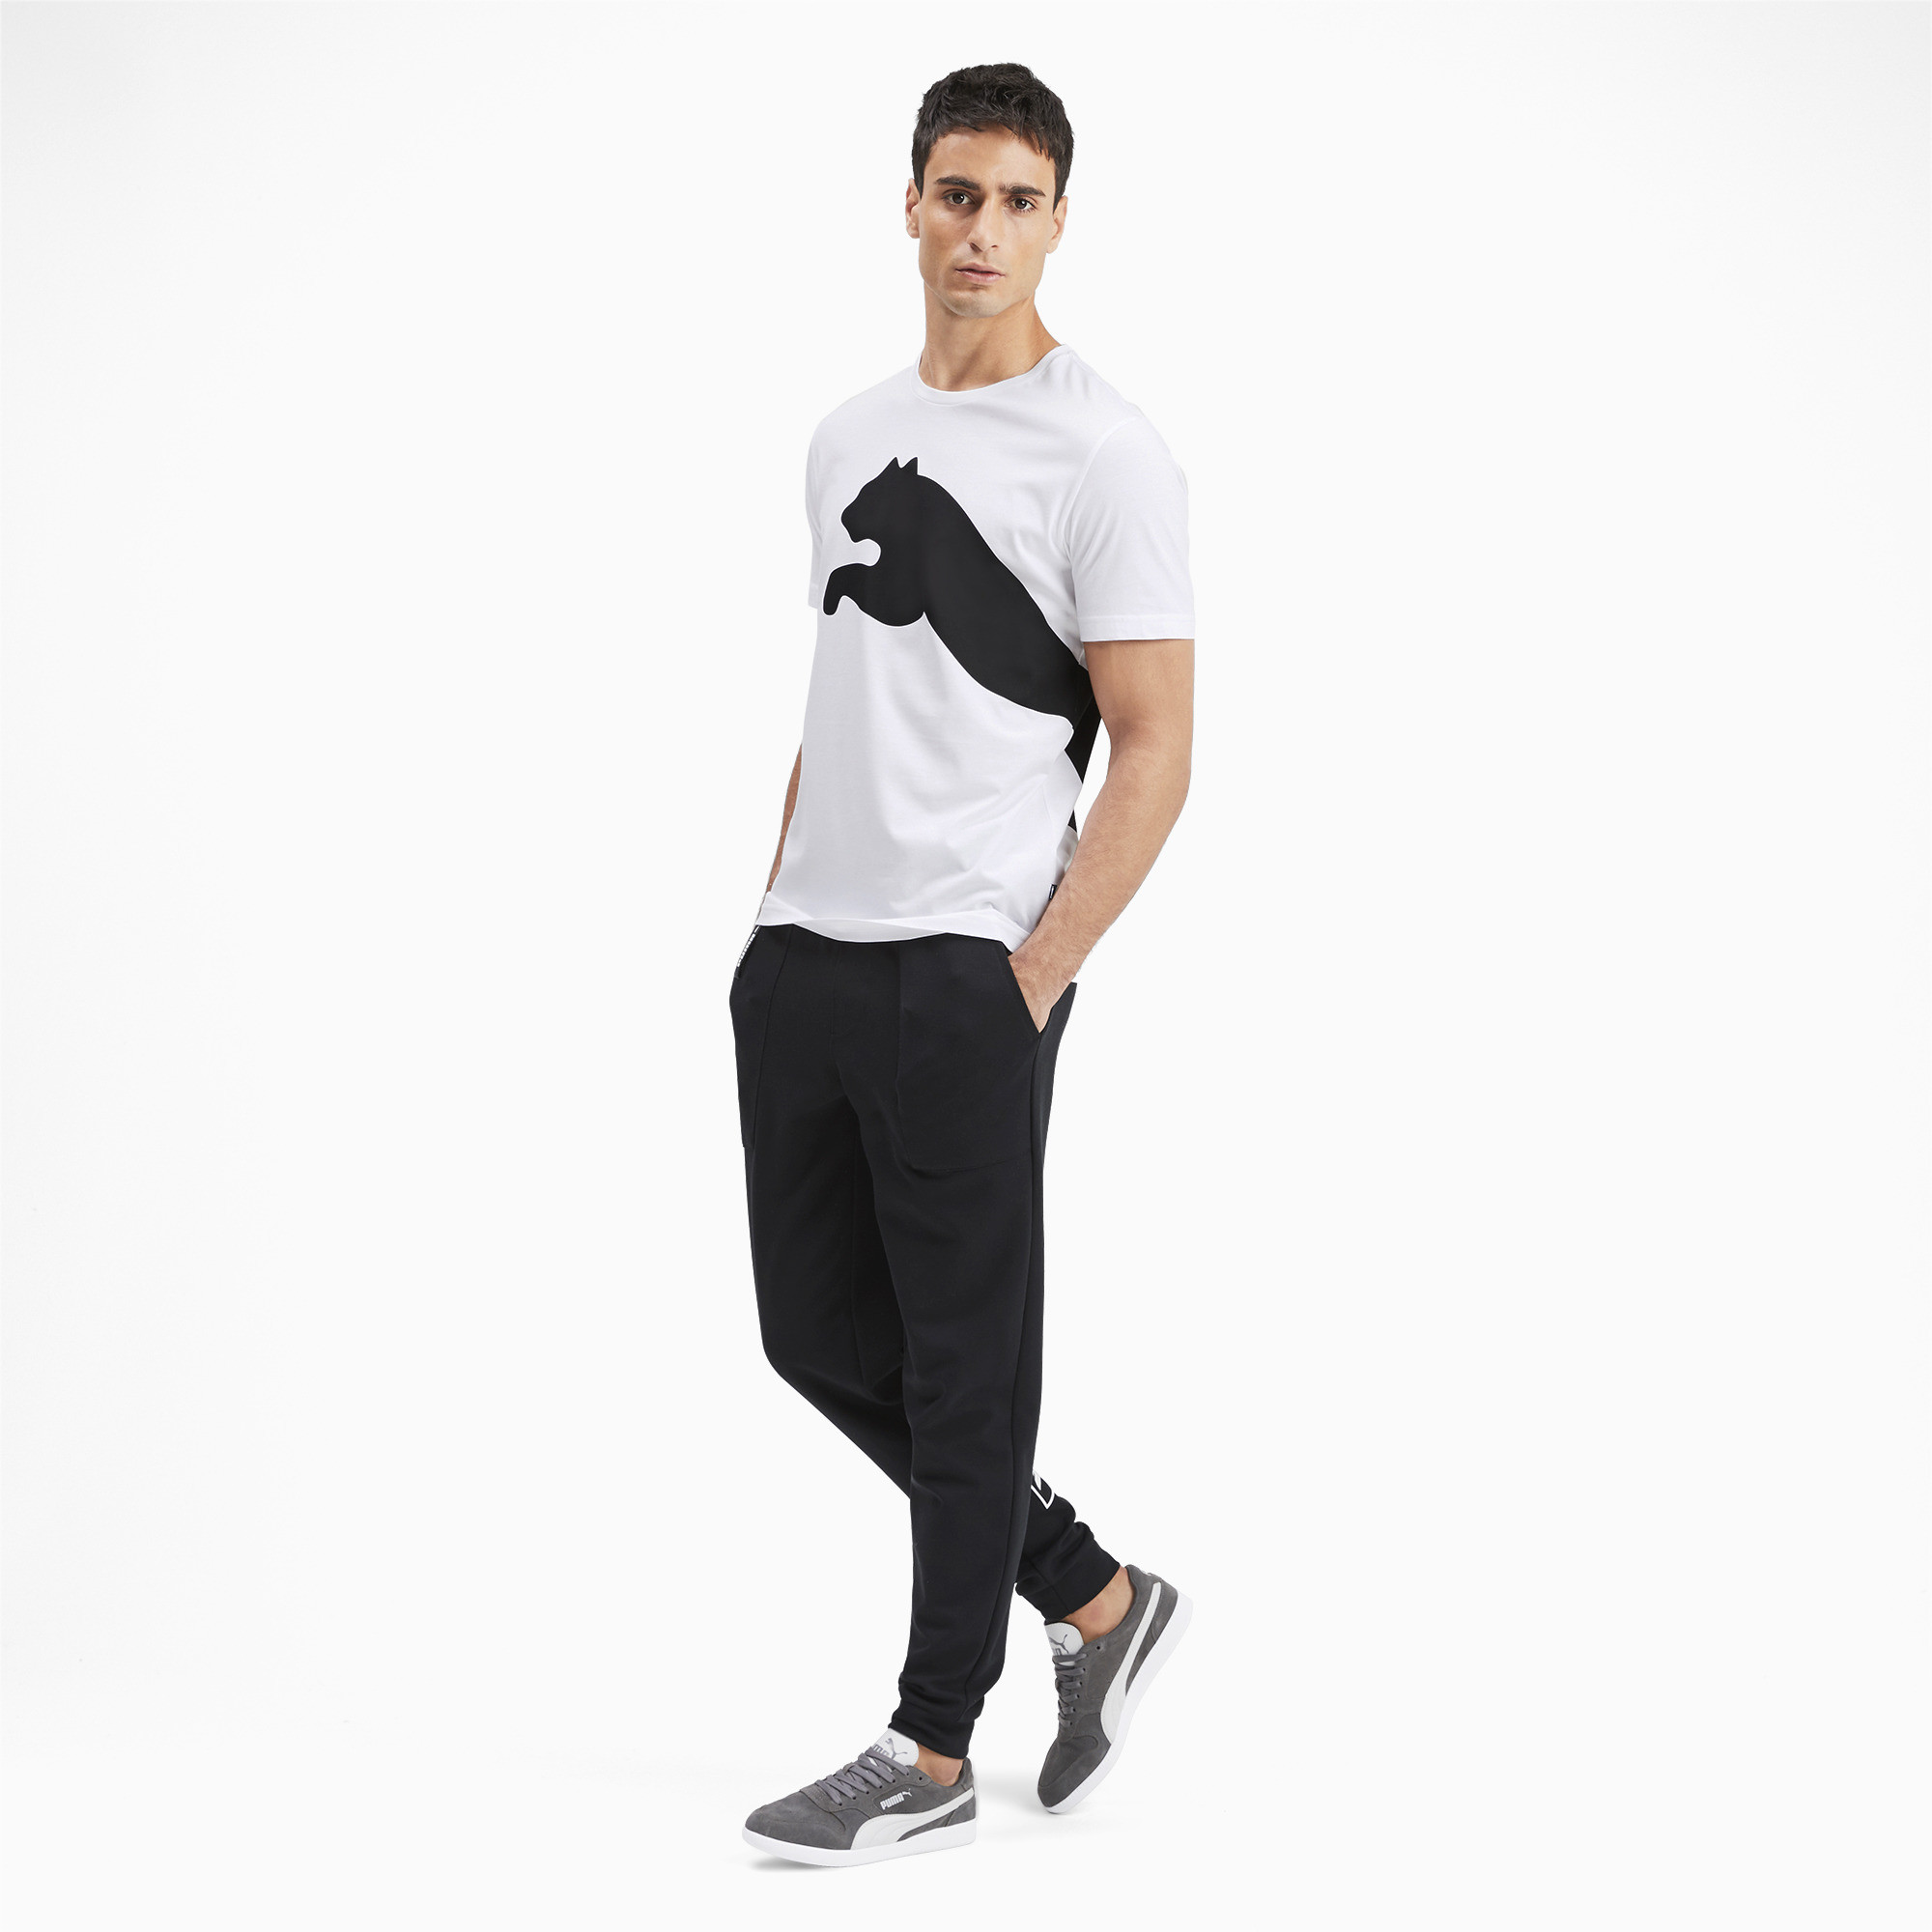 PUMA-Big-Logo-Men-039-s-Tee-Men-Tee-Basics thumbnail 6